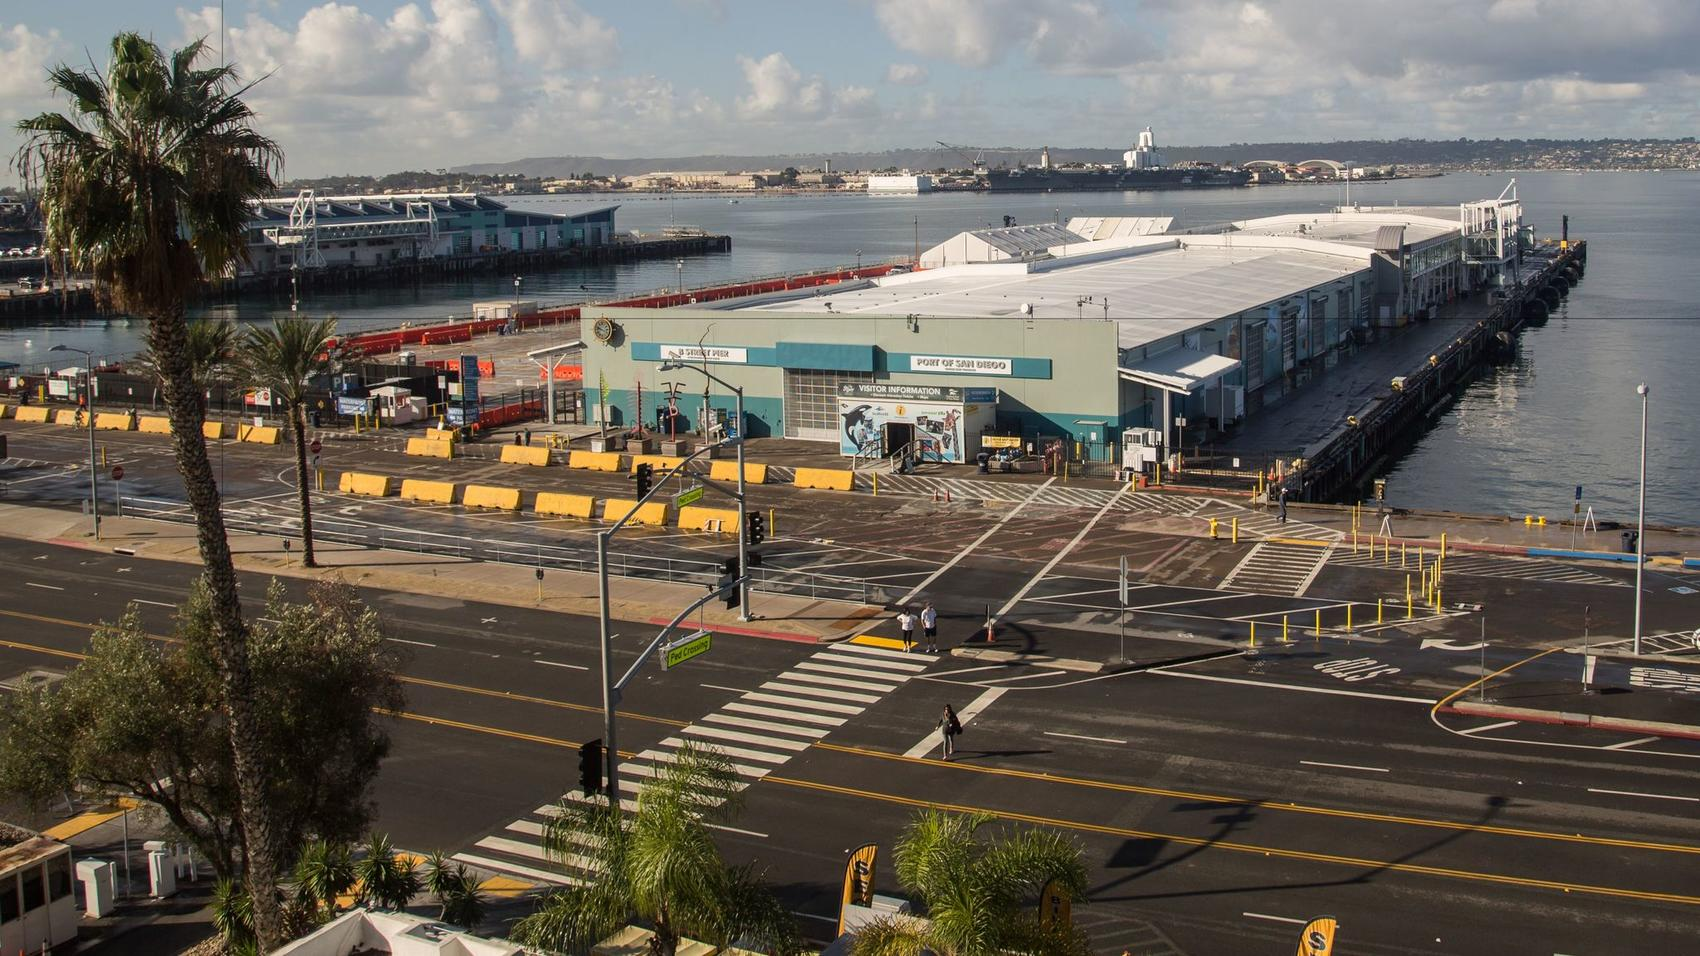 B Street Pier is the location of the cruise ship terminal, a former warehouse. (Tony Webster/SD Unified Port District)